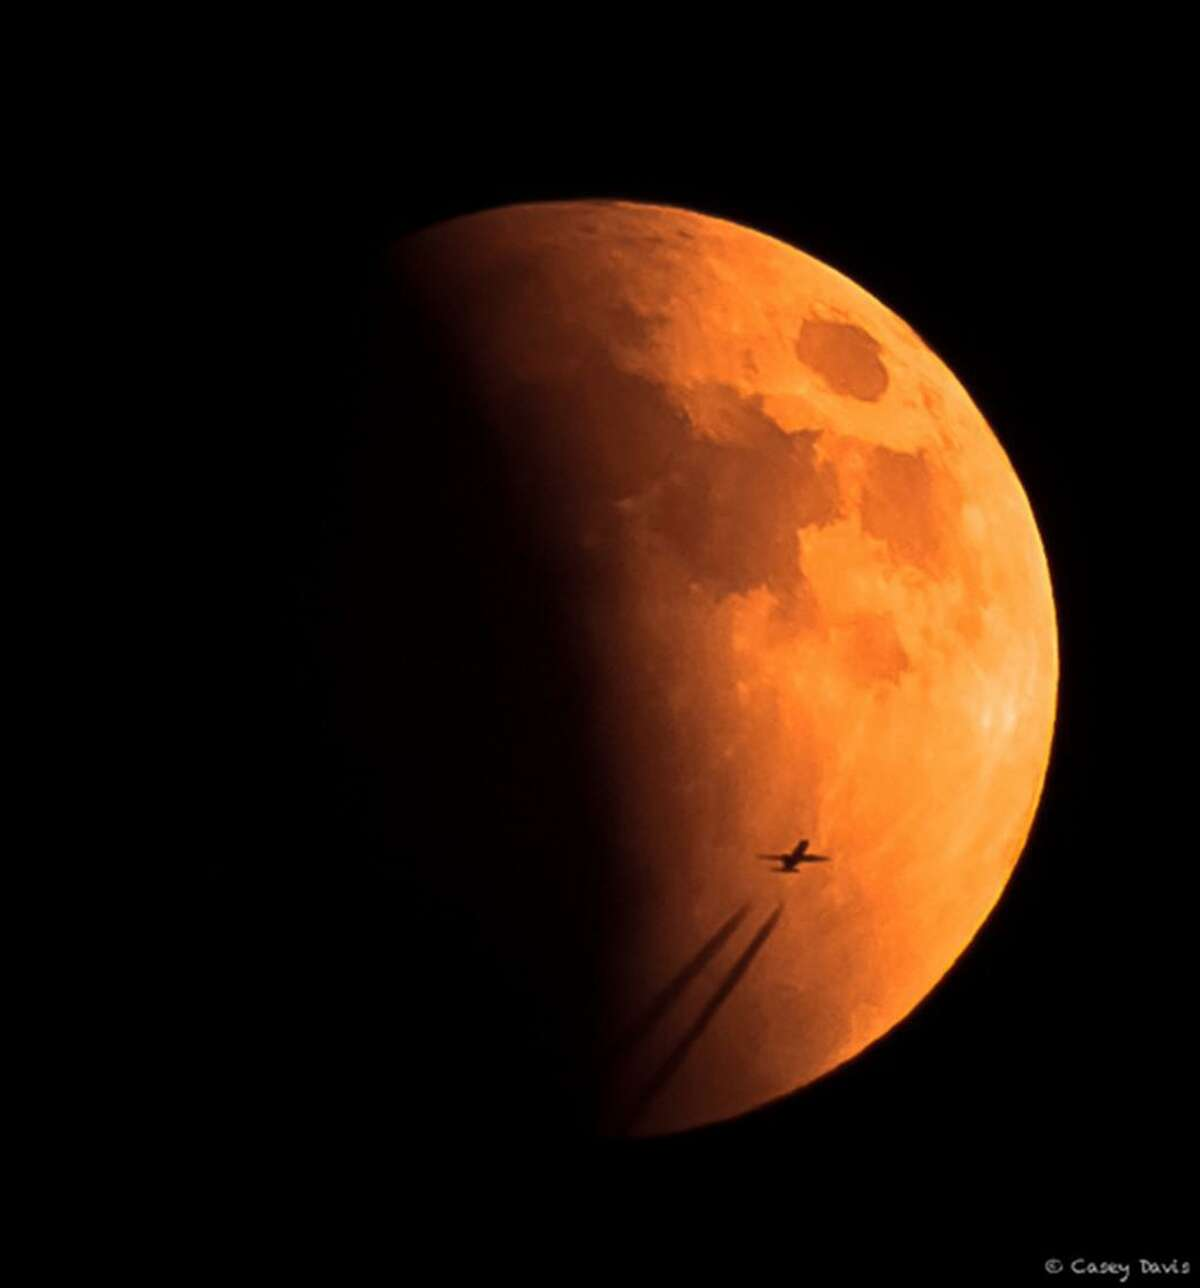 """NASA held a social media photo contest on Facebook during the Sept. 27, 2015 """"super blood moon."""" This picture, entered into the competition, was taken by Casey Davis using a Canon T3I DSLR with the lens being a Canon EFS 55-250mm."""